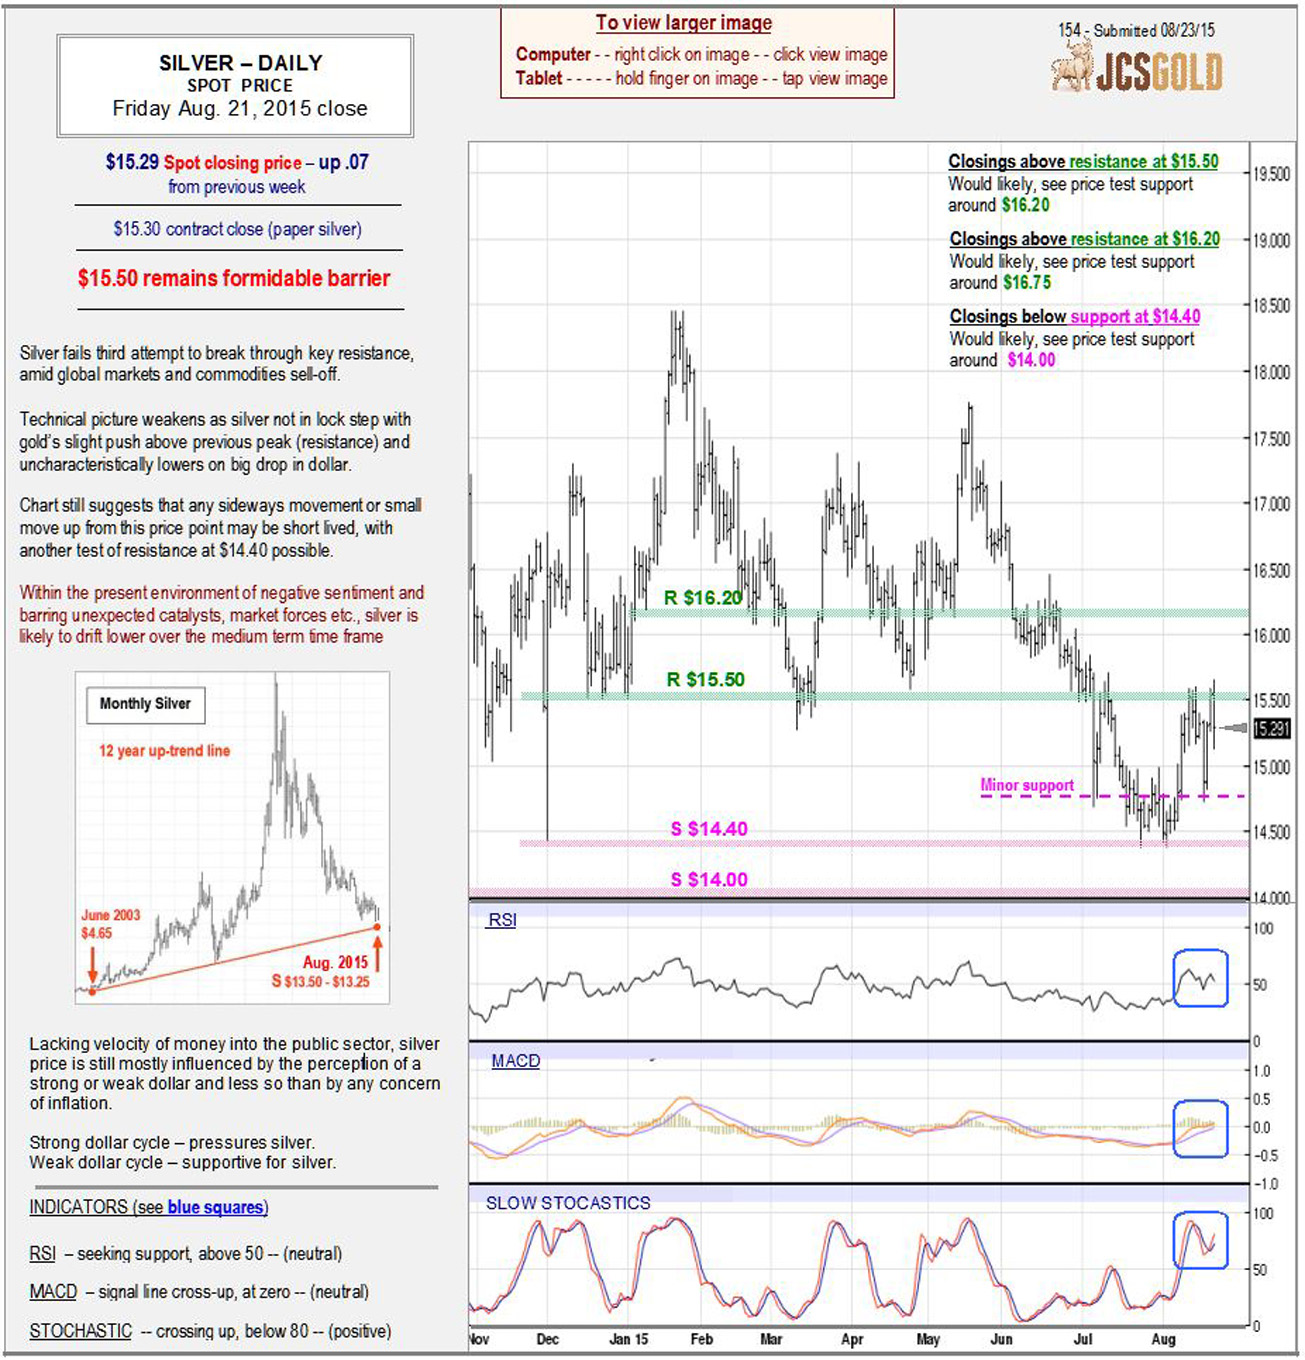 Aug 21, 2015 chart & commentary